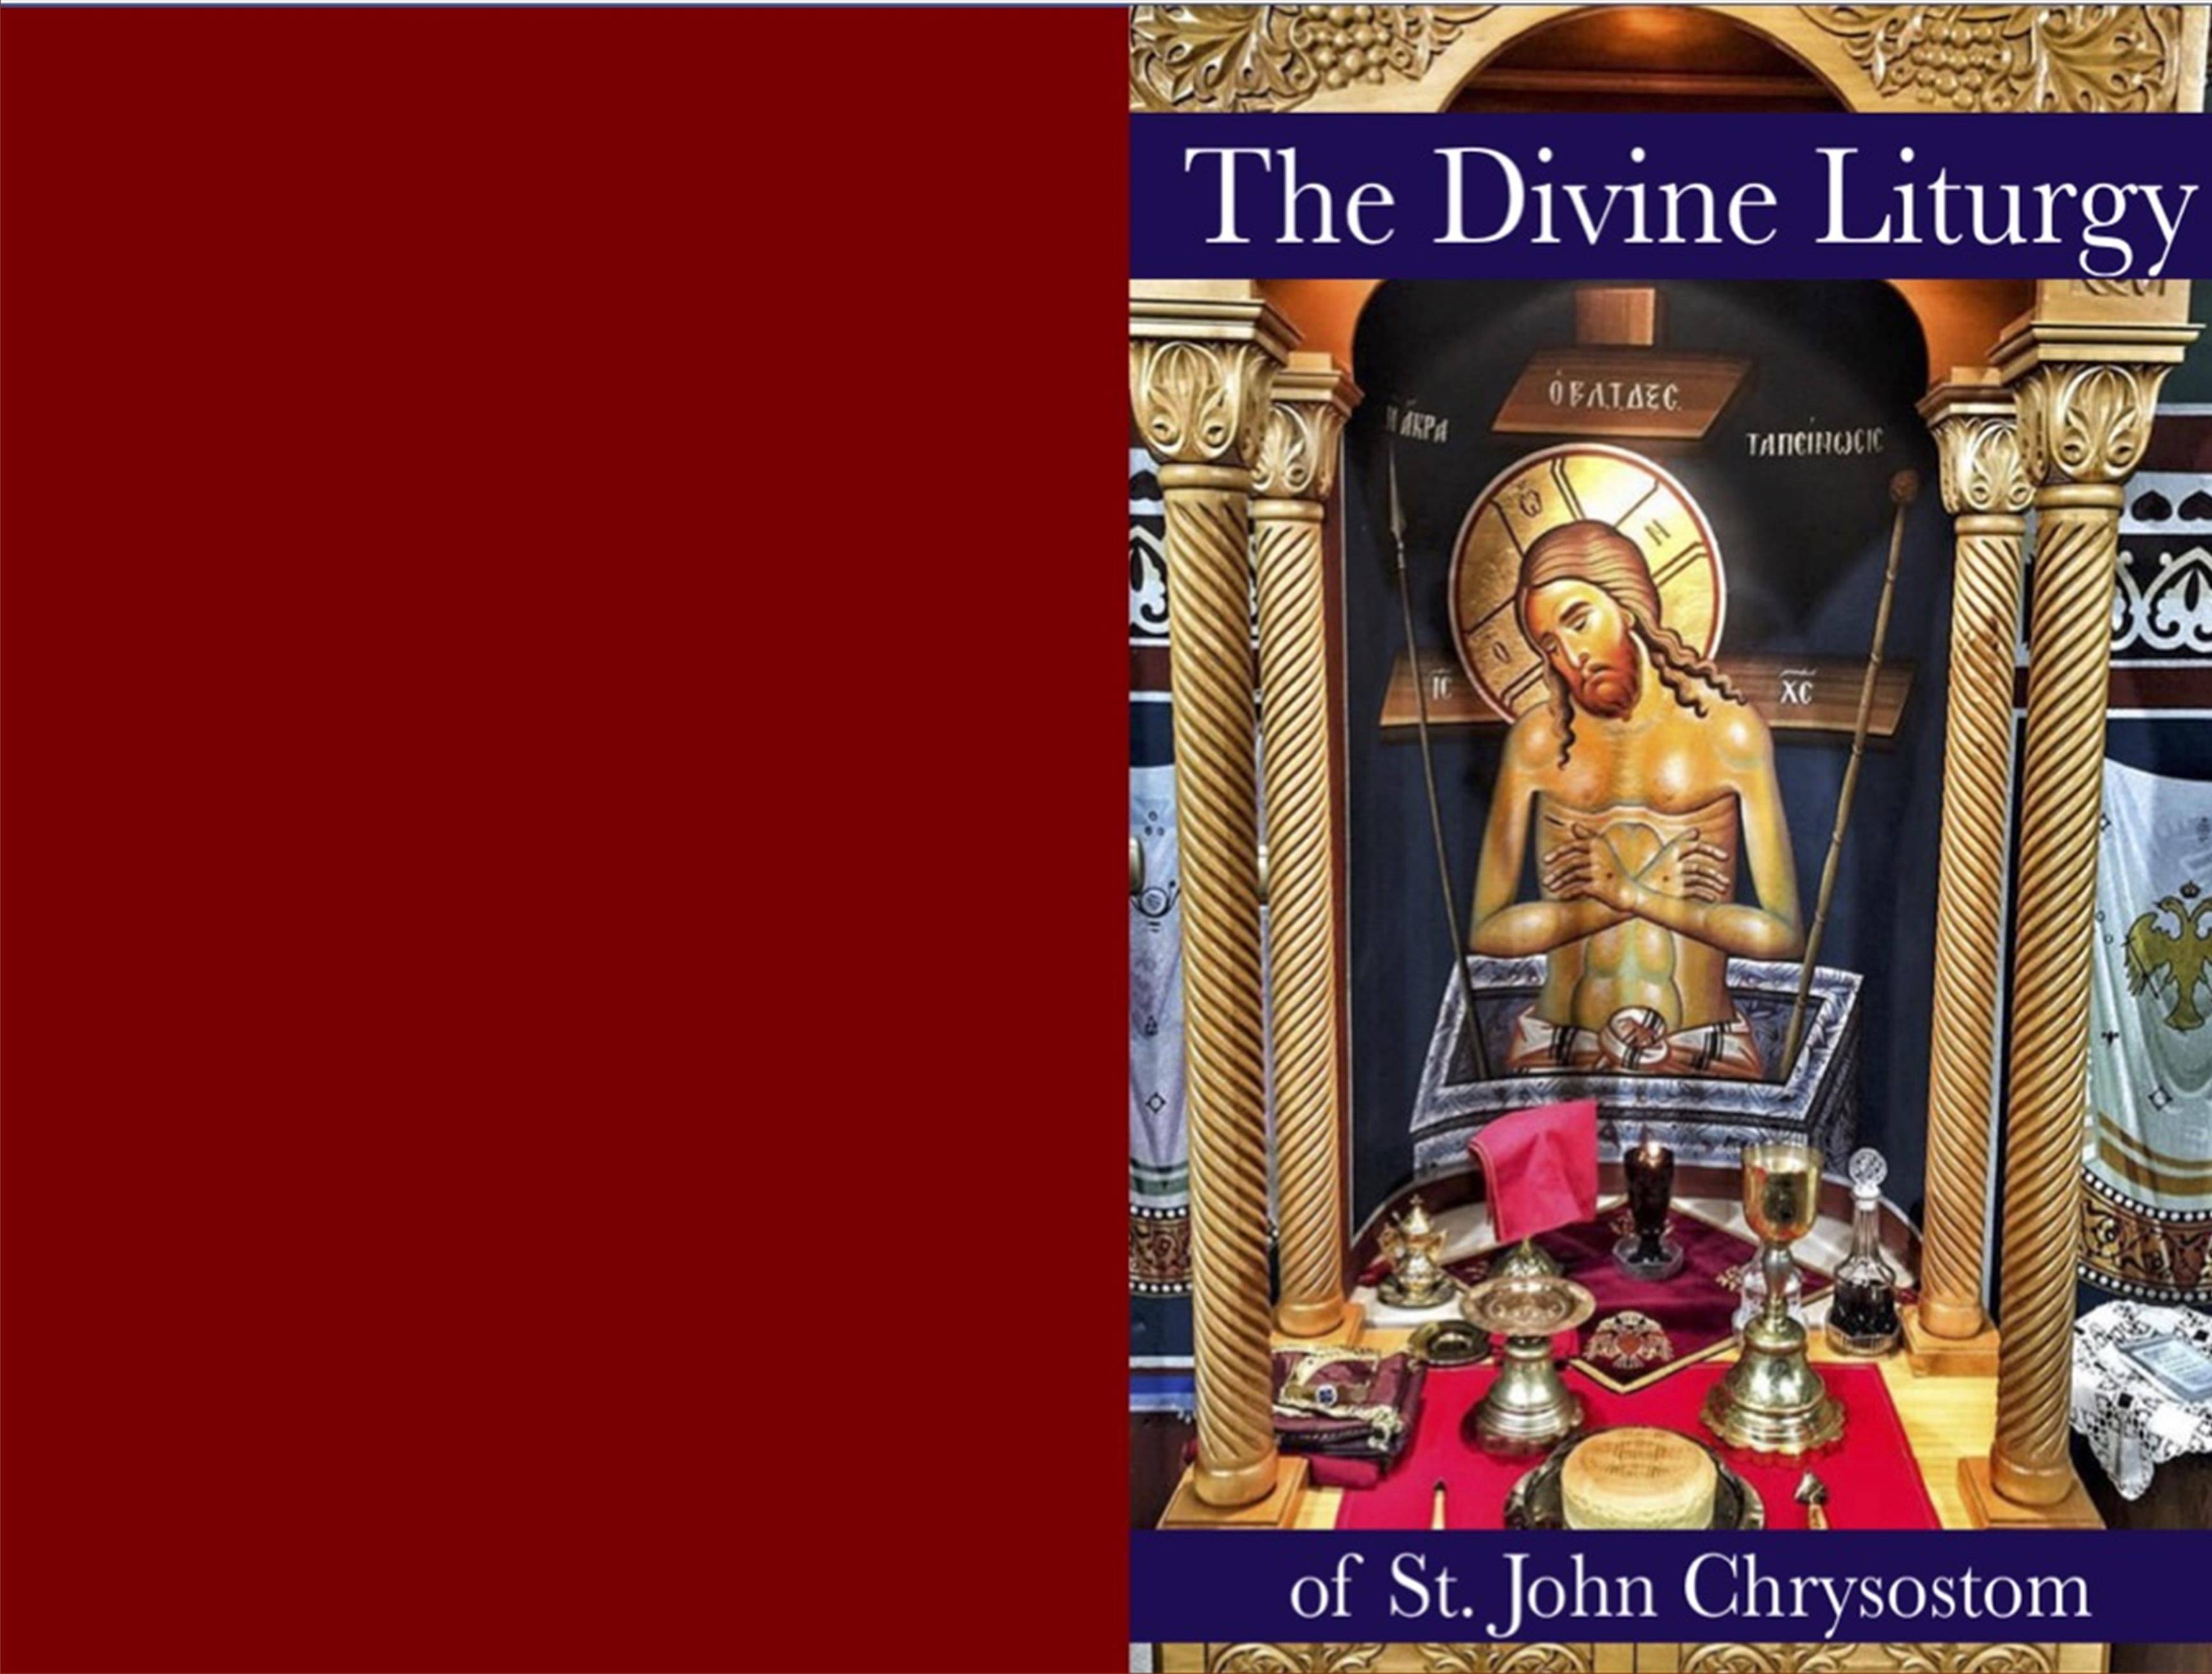 The Divine Liturgy cover image